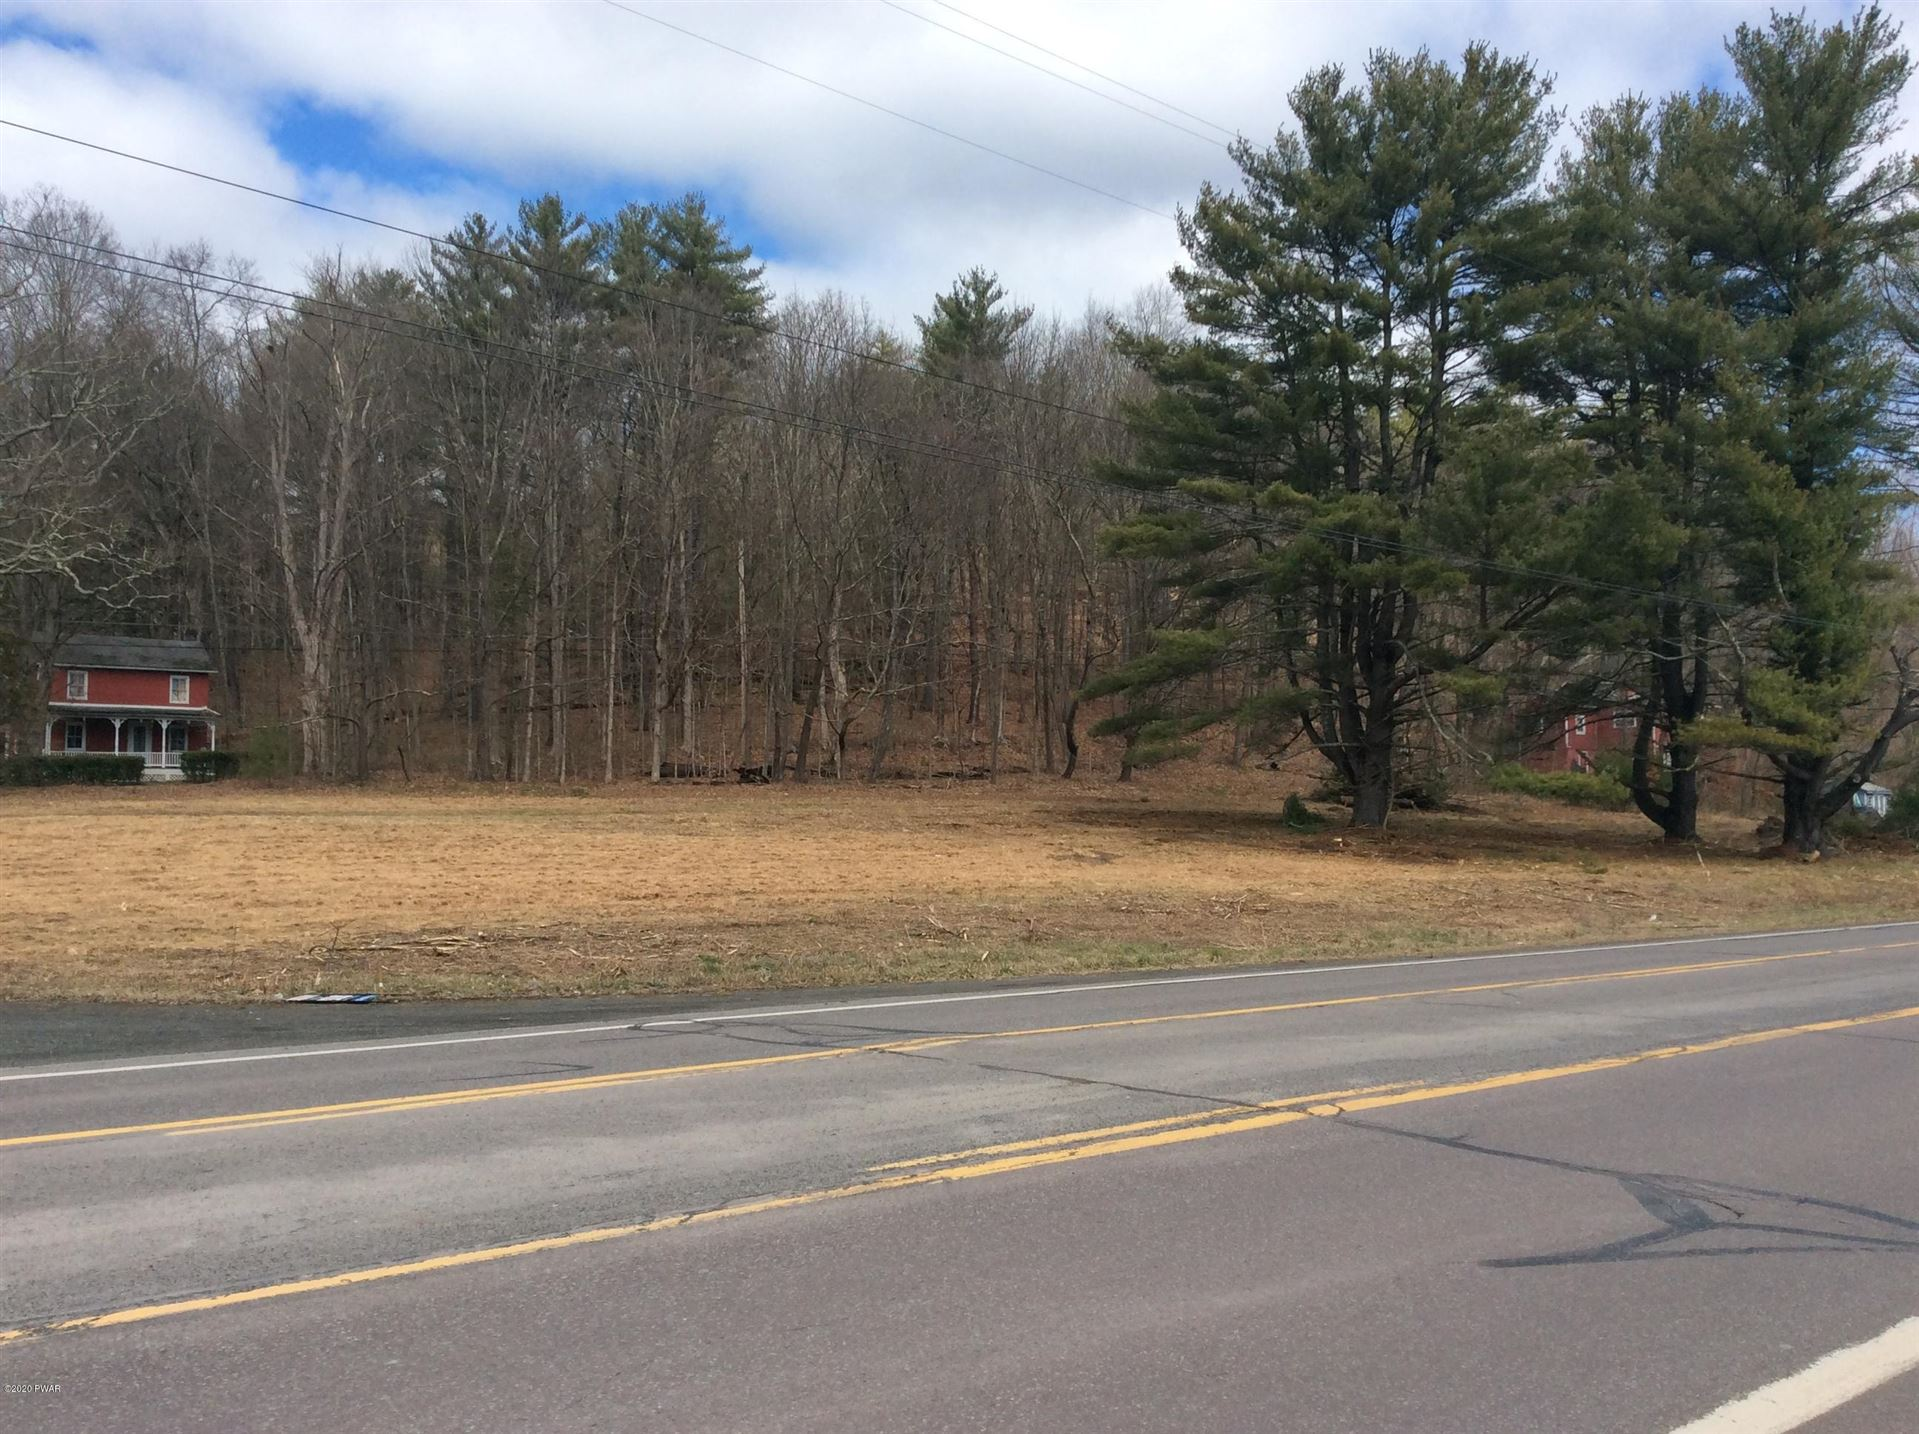 Photo of Lot 3 Route 6 and 209, Milford, PA 18337 (MLS # 20-1108)